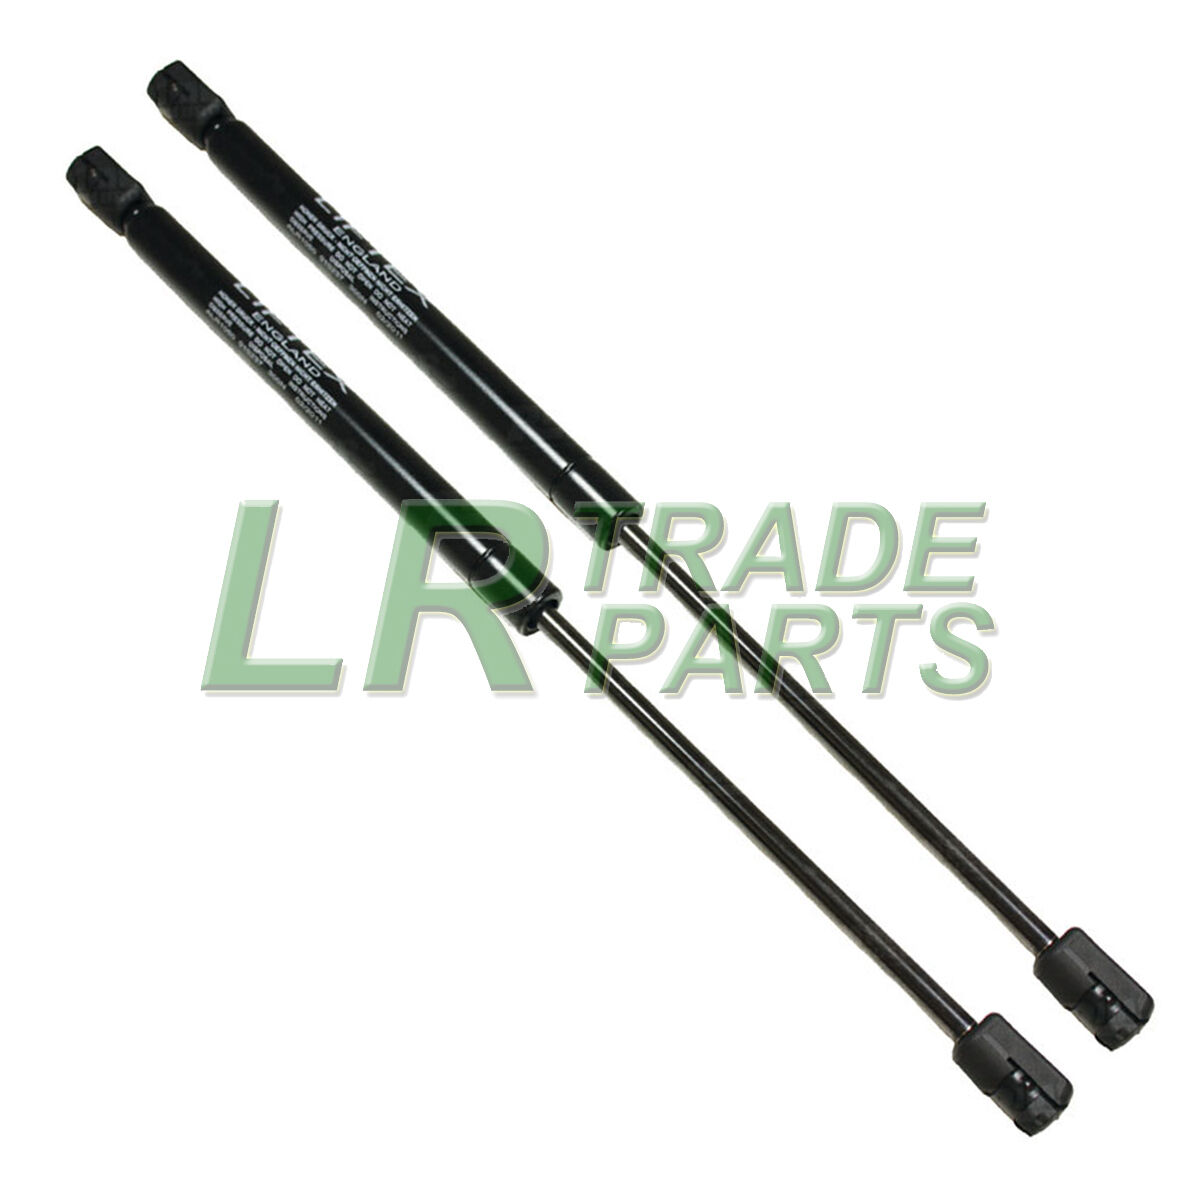 Car Parts - RANGE ROVER P38 NEW TAILGATE BOOT GAS SUPPORT STRUTS X2 ALR1050 (1995-2002)